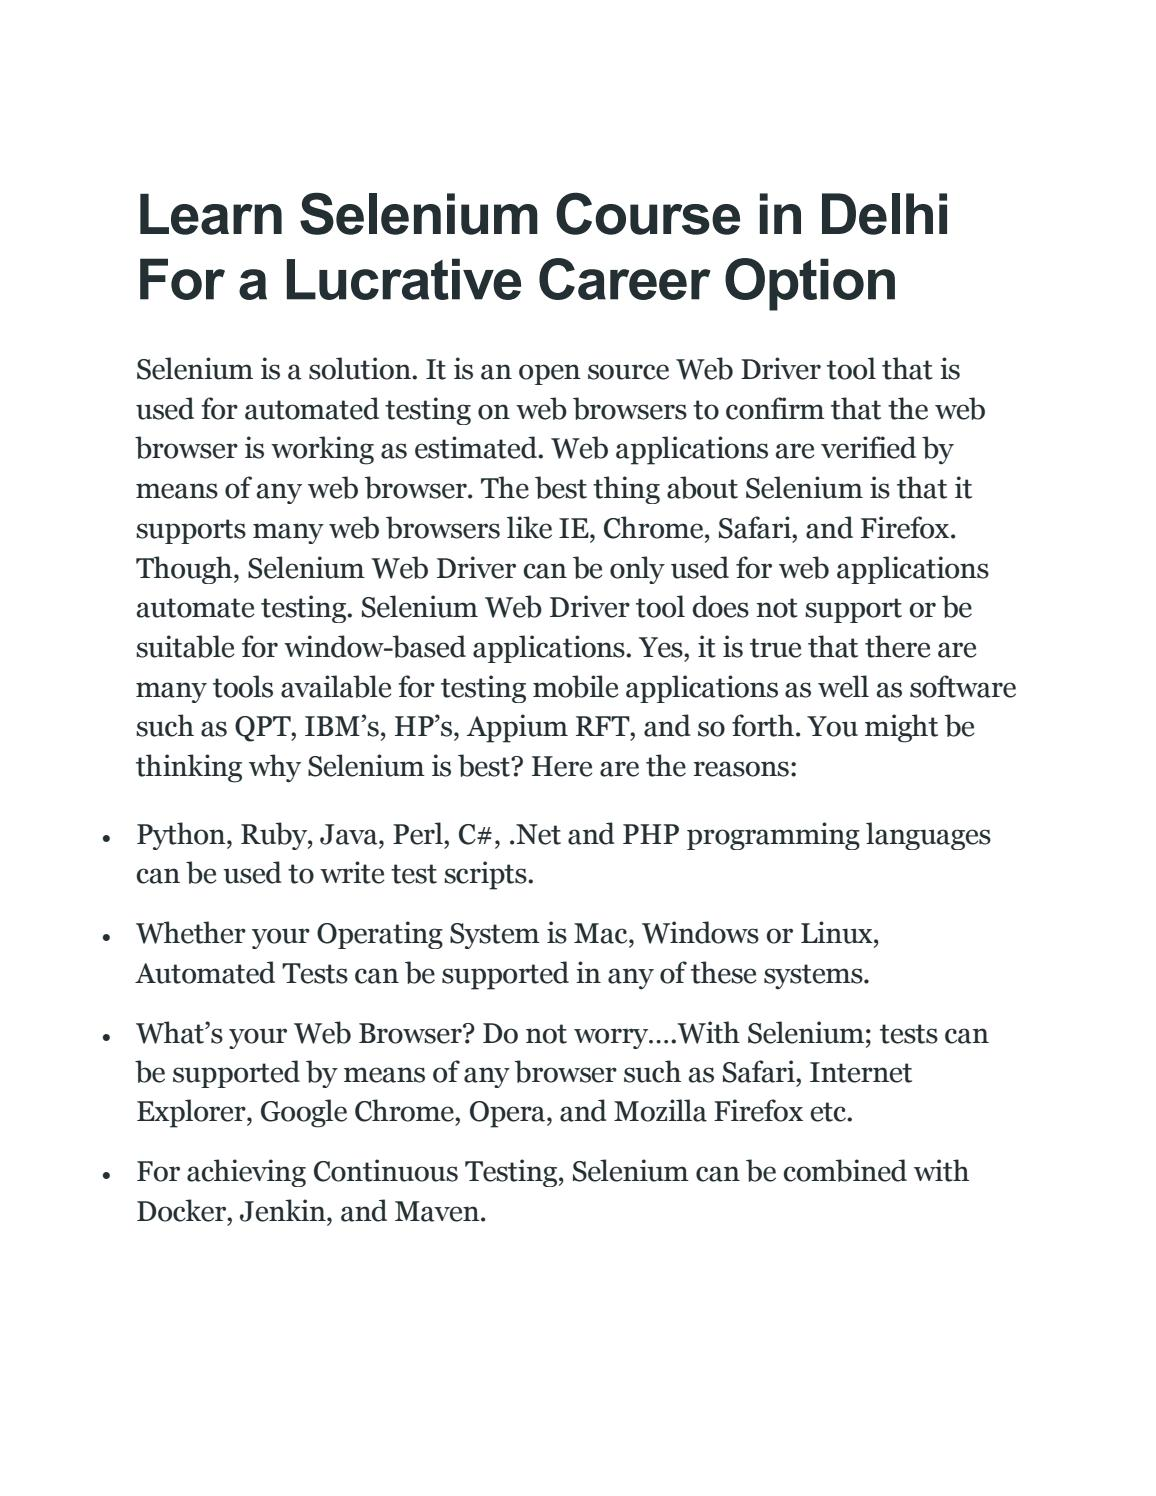 Learn Selenium Course in Delhi NCR For a Lucrative Career